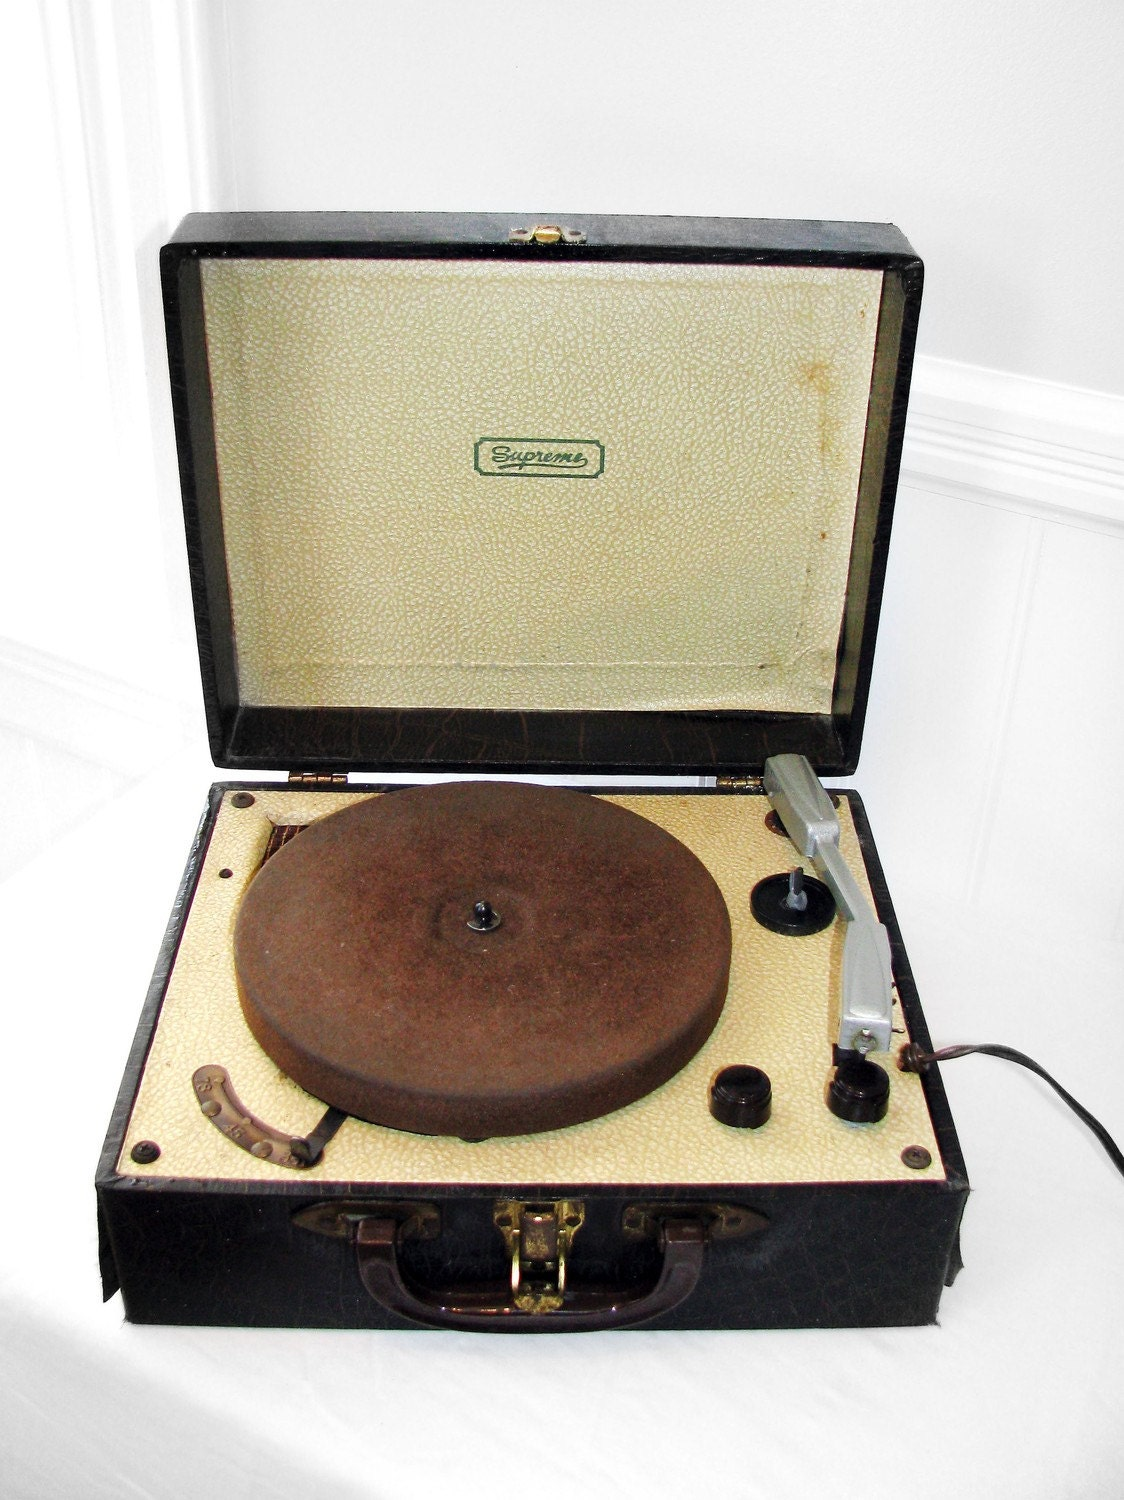 Vintage Portable Record Player By Supreme